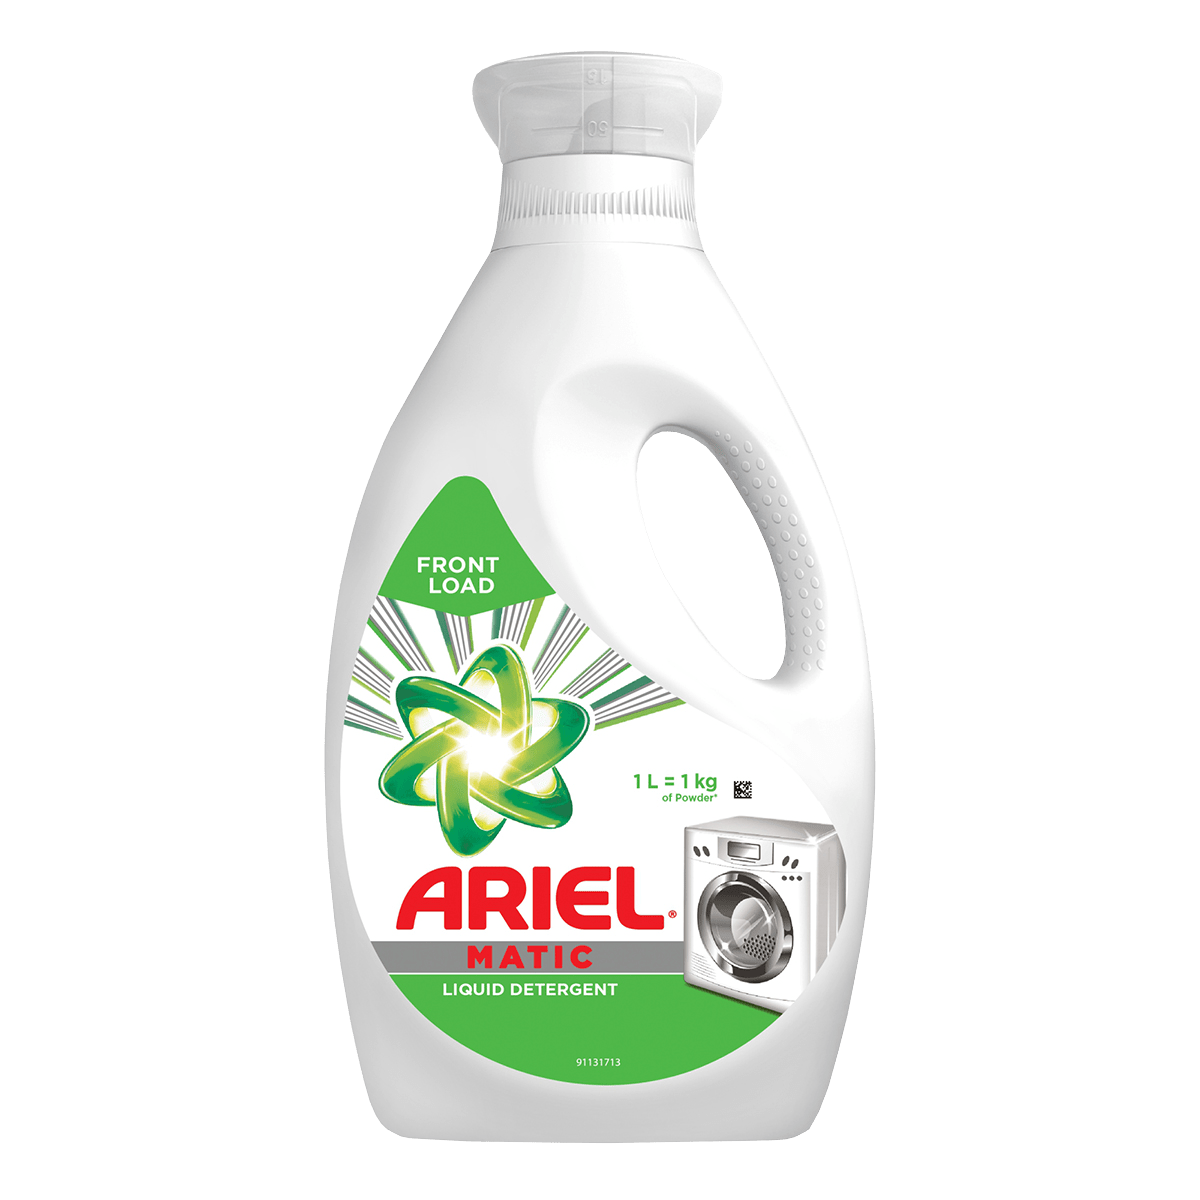 Ariel Matic Liquid Detergent for Front Load Washing Machines